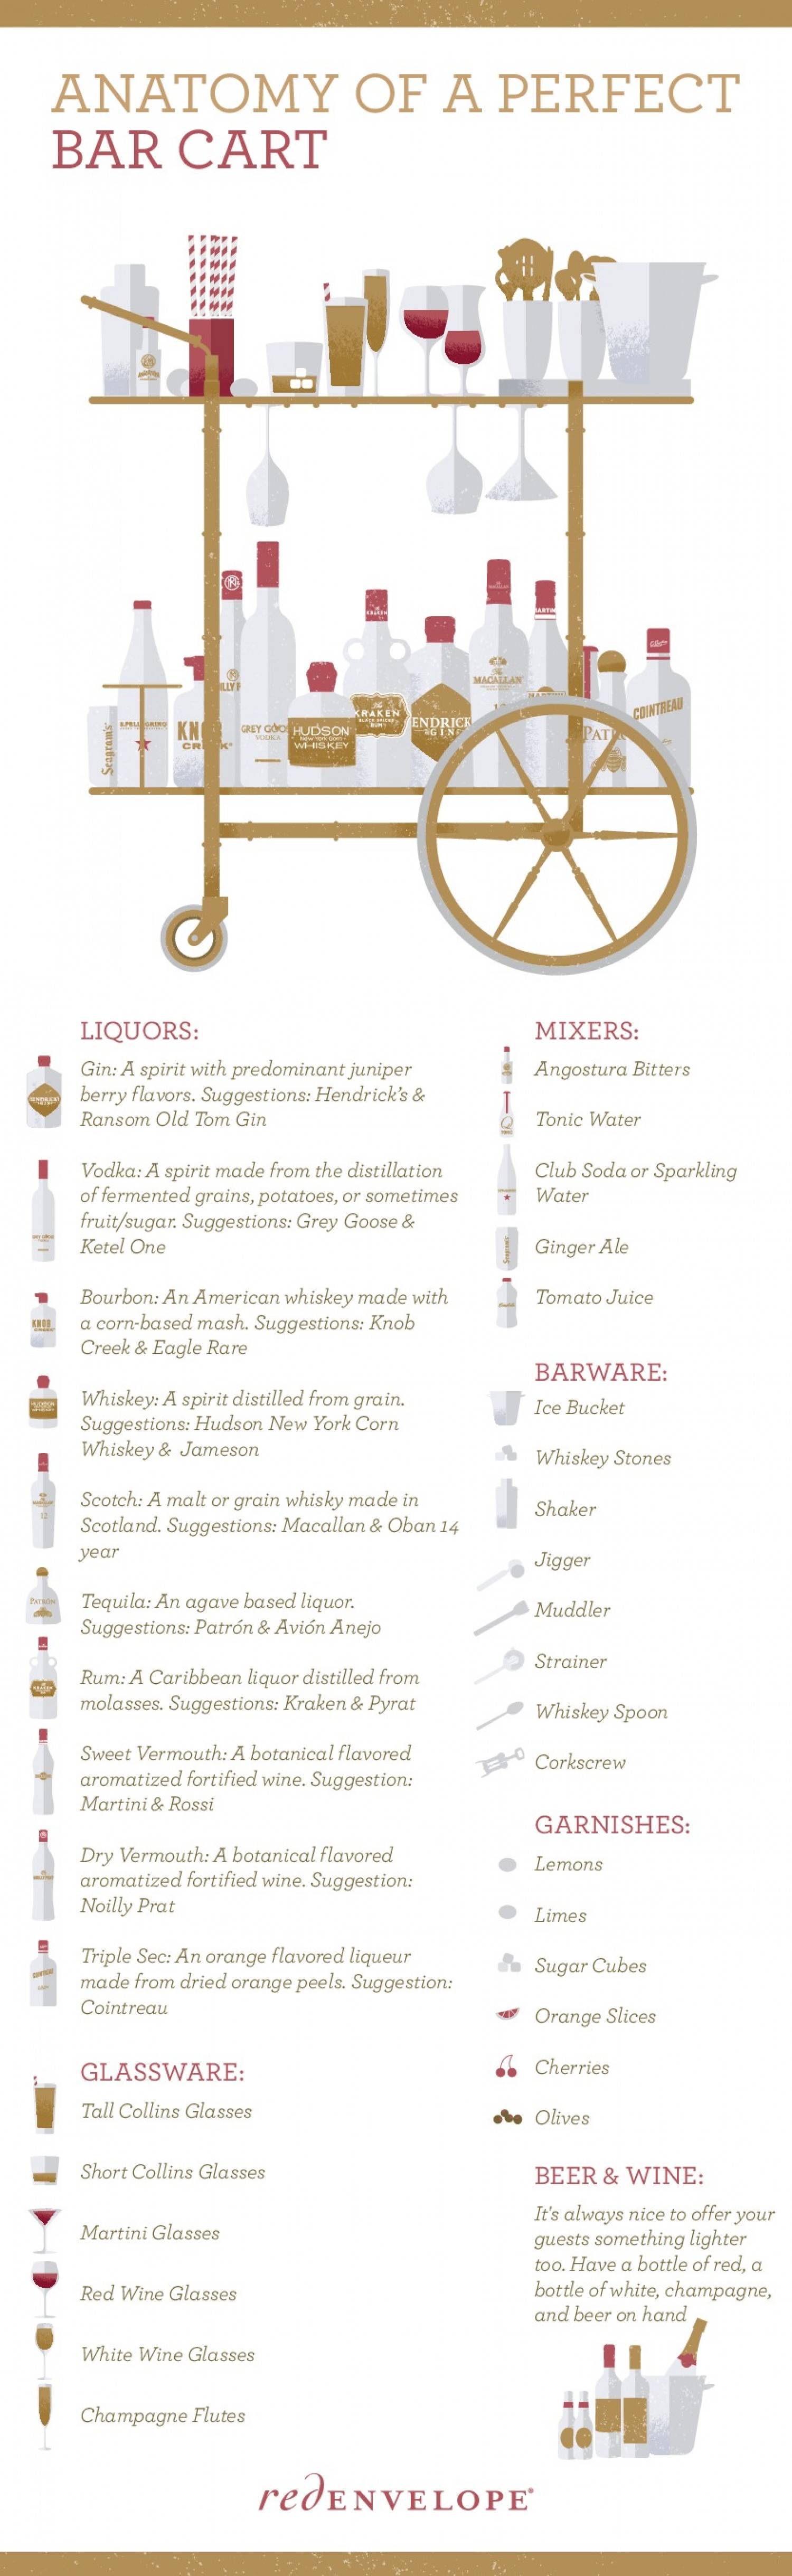 Anatomy of a Bar Cart Infographic